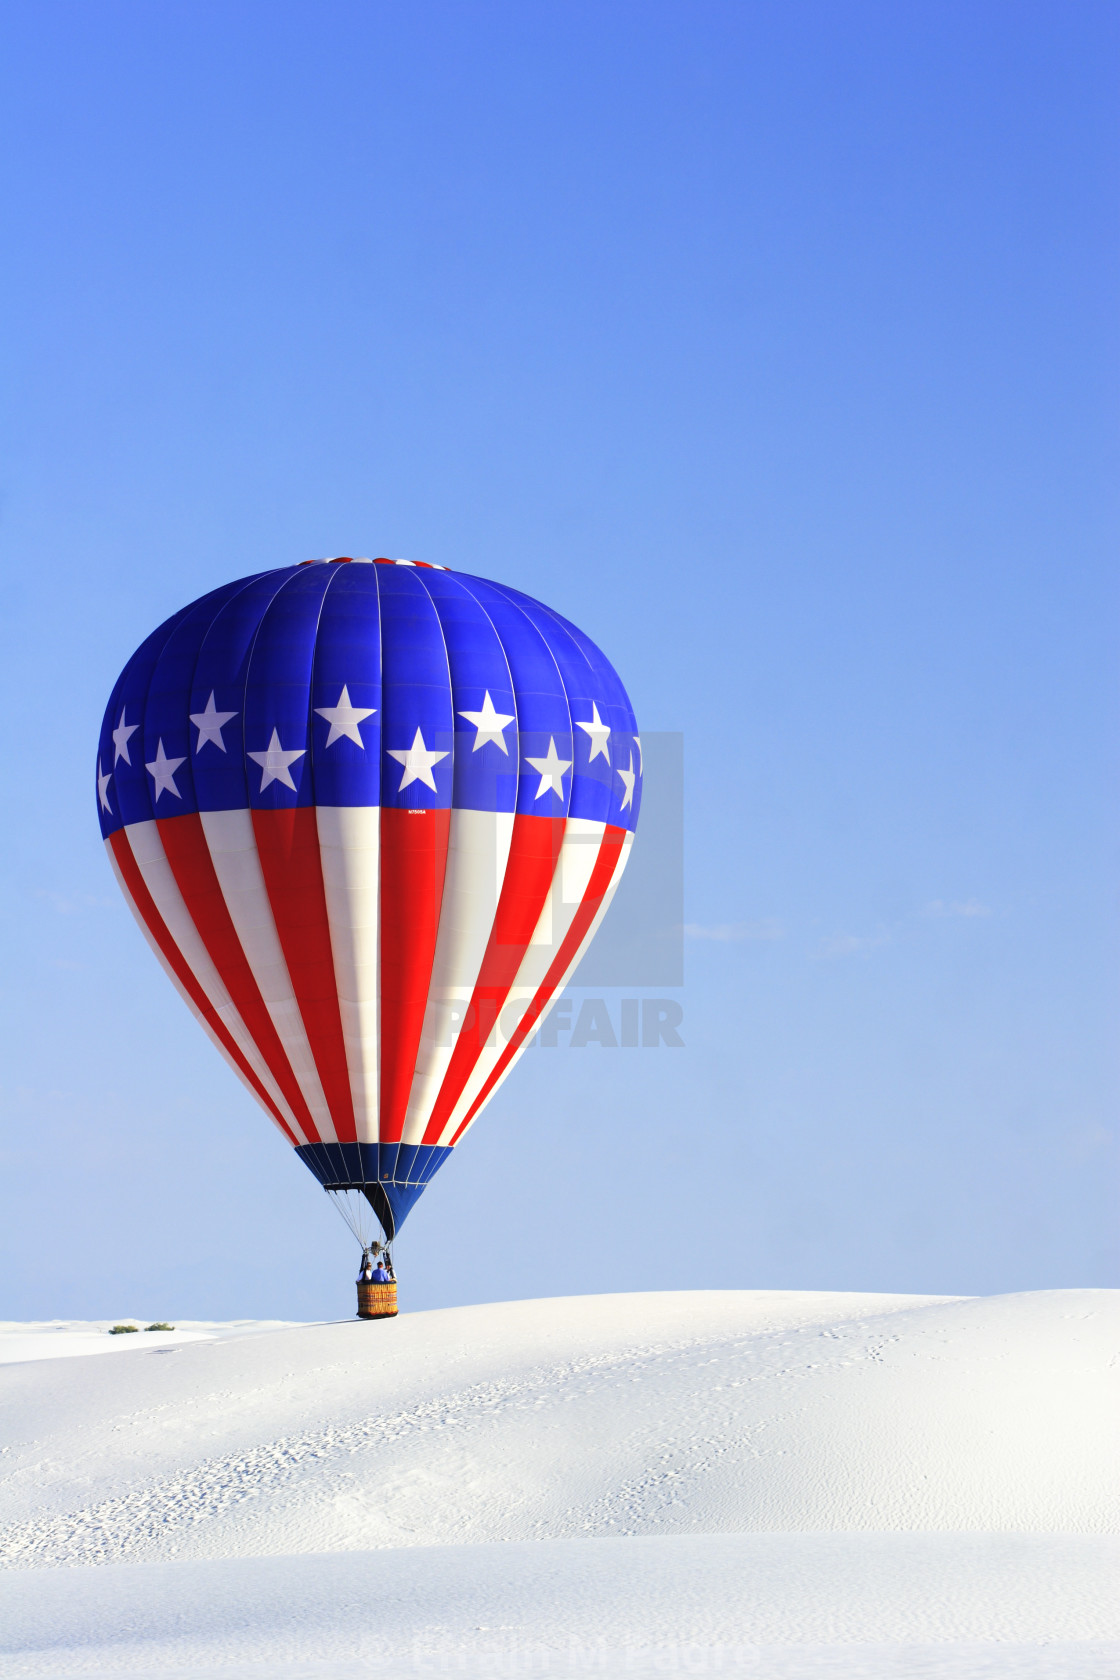 """Red, white and blue hot air balloon, White Sands National Monument Balloon Festival, near Alamogordo, New Mexico USA"" stock image"